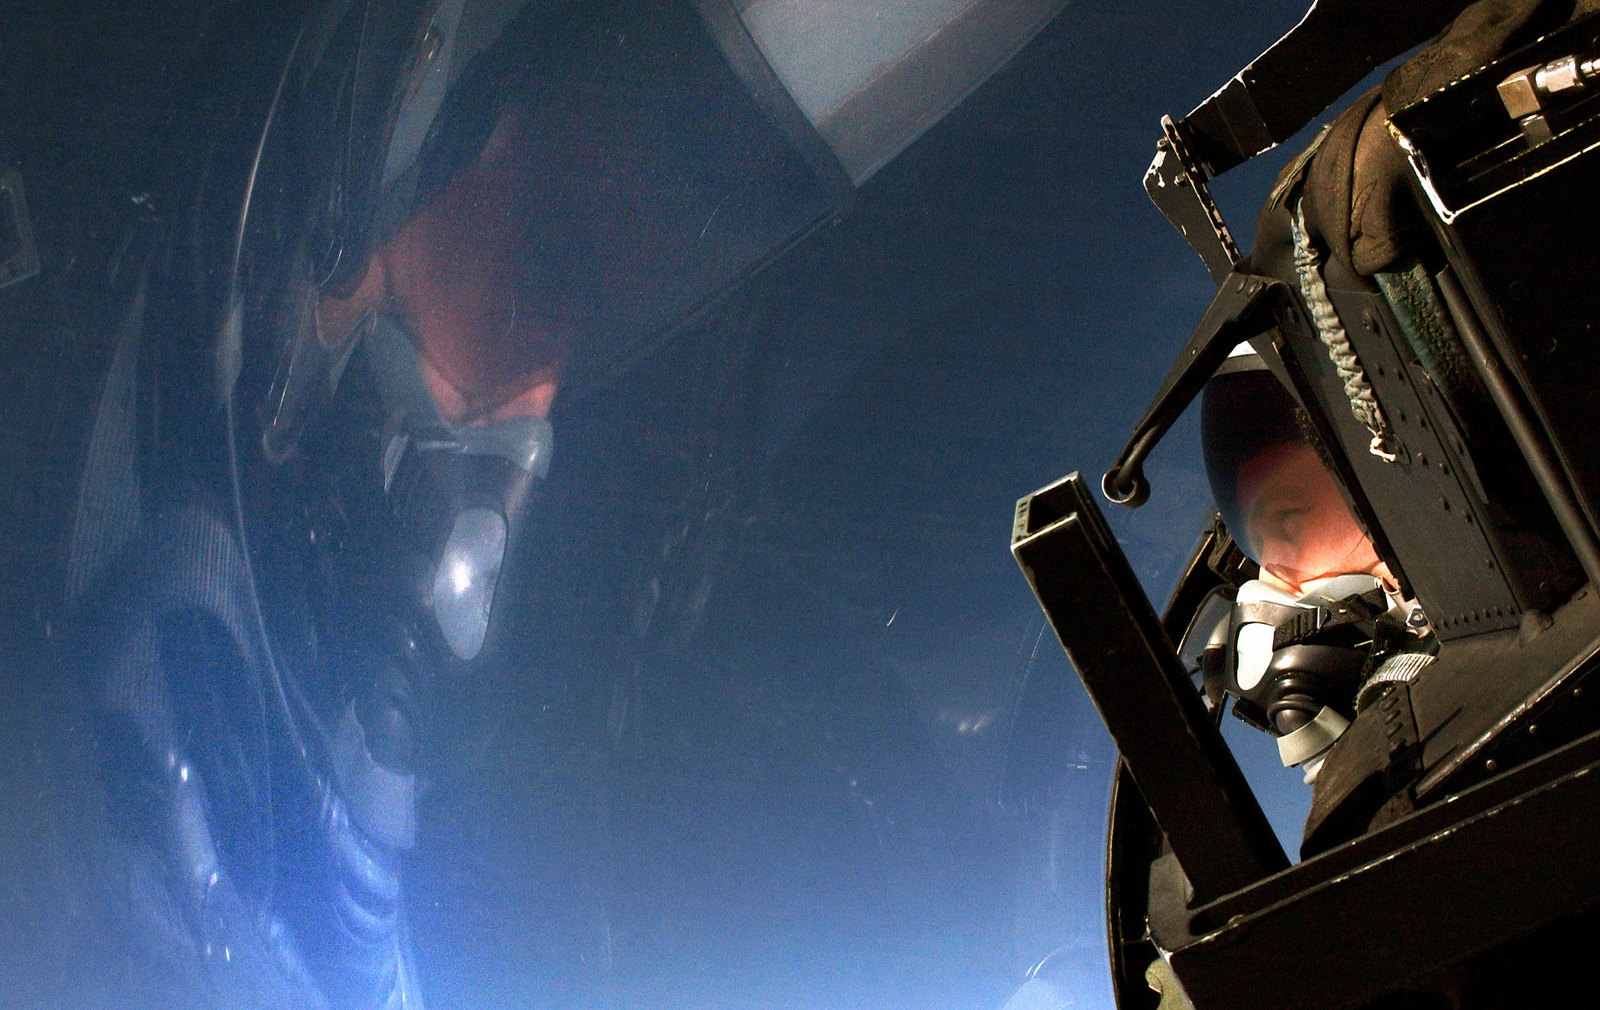 The pilot of a US Air Force (USAF) F-15D Eagle aircraft assigned to the 90th Fighter Squadron (FS) scans the skies from the cockpit of his aircraft during a training flight in support of Exercise NORTHERN EDGE 2002